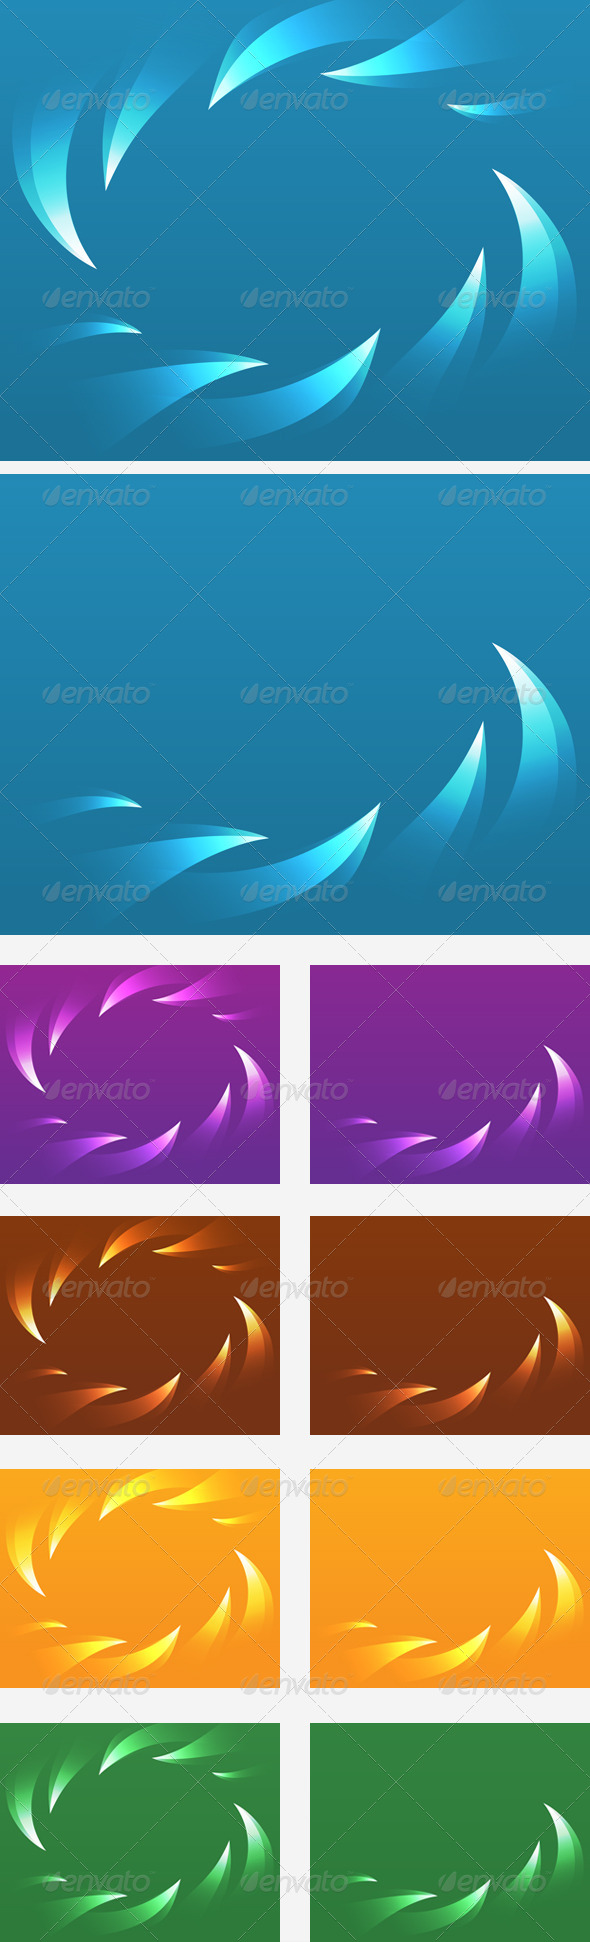 GraphicRiver Abstract Background 6253395